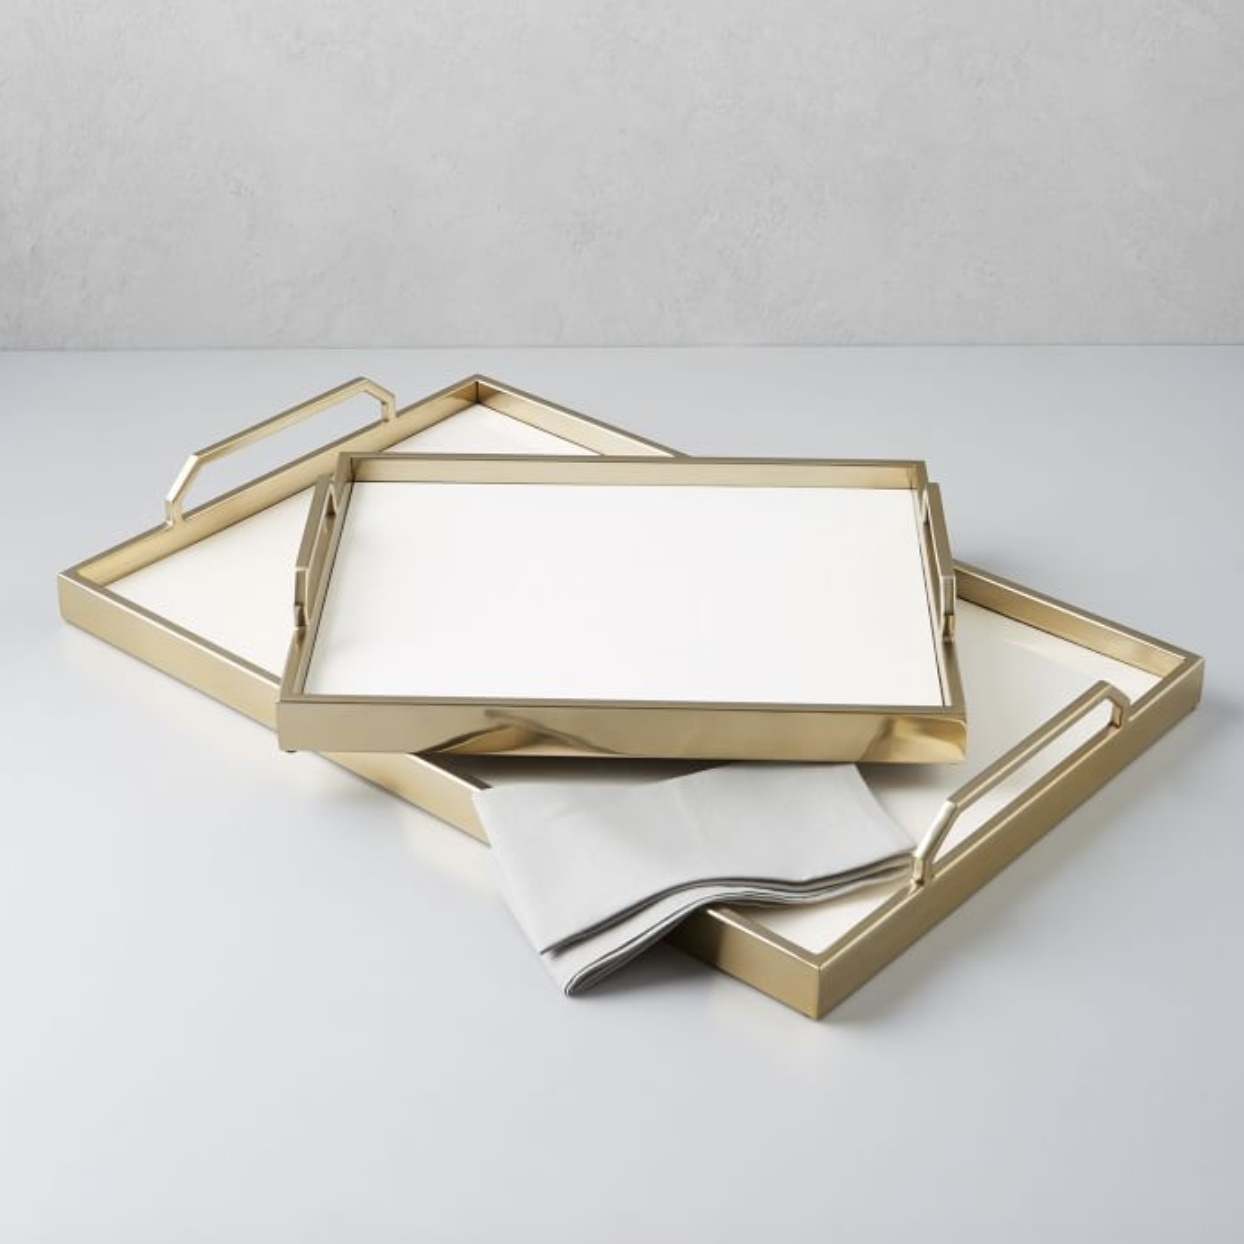 Enamel Café Tray - Brass tray with handle, $99; West Elm